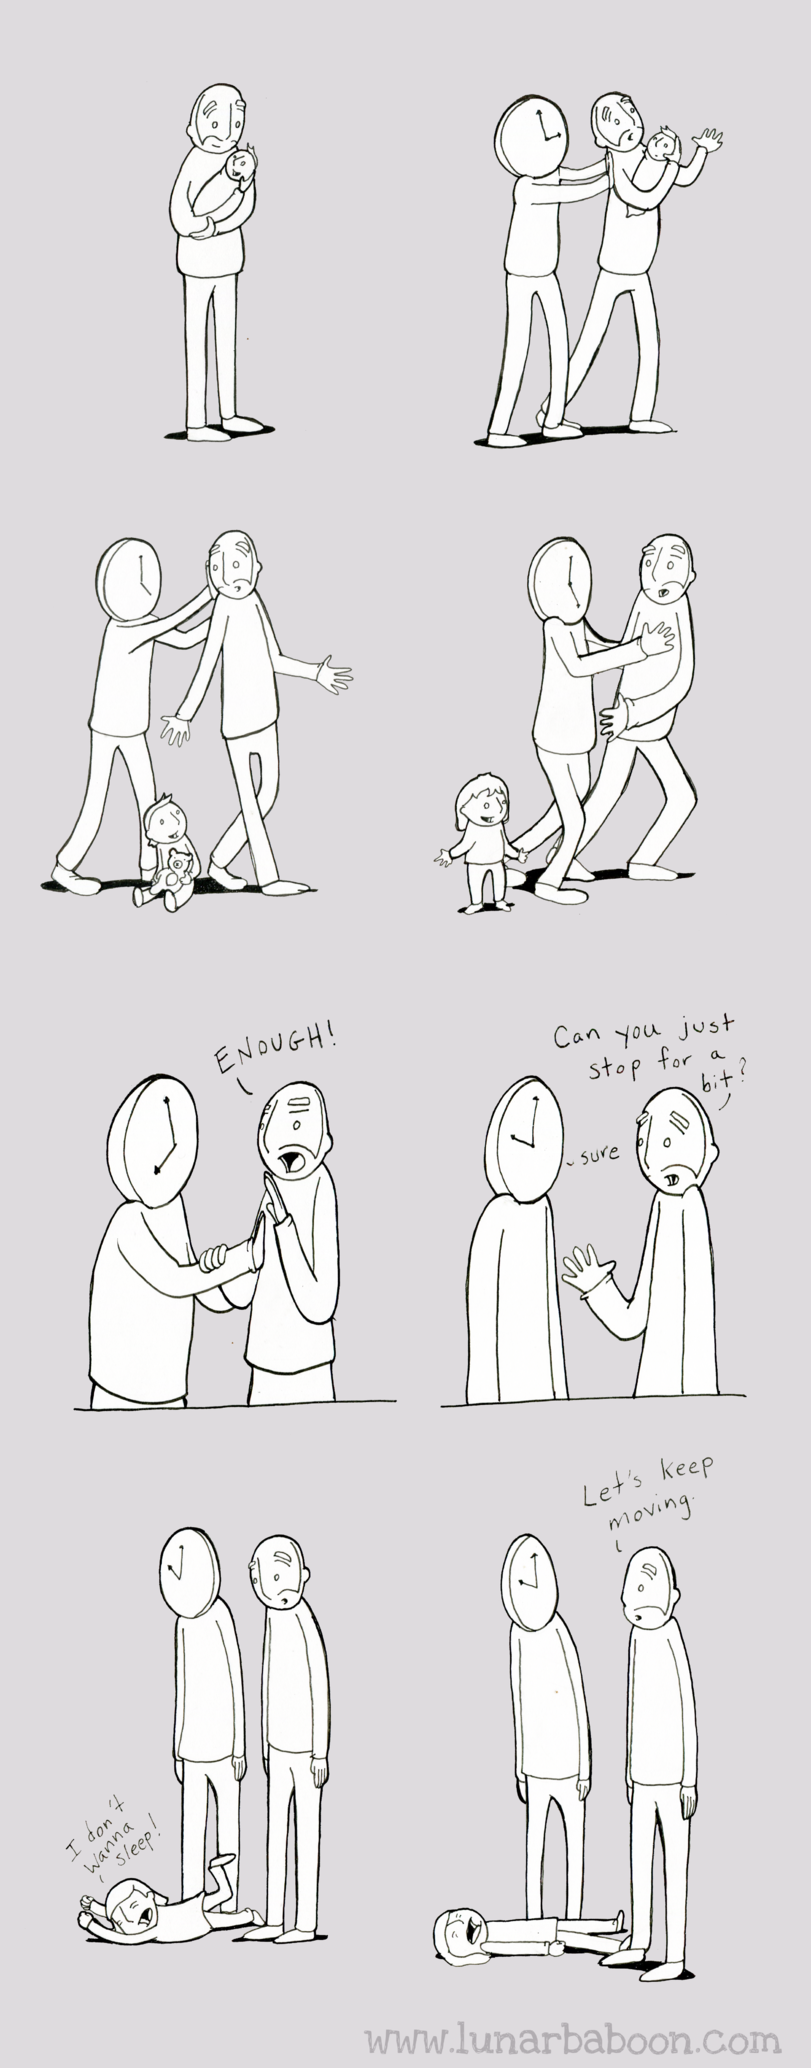 time-lunarbaboon-comics-